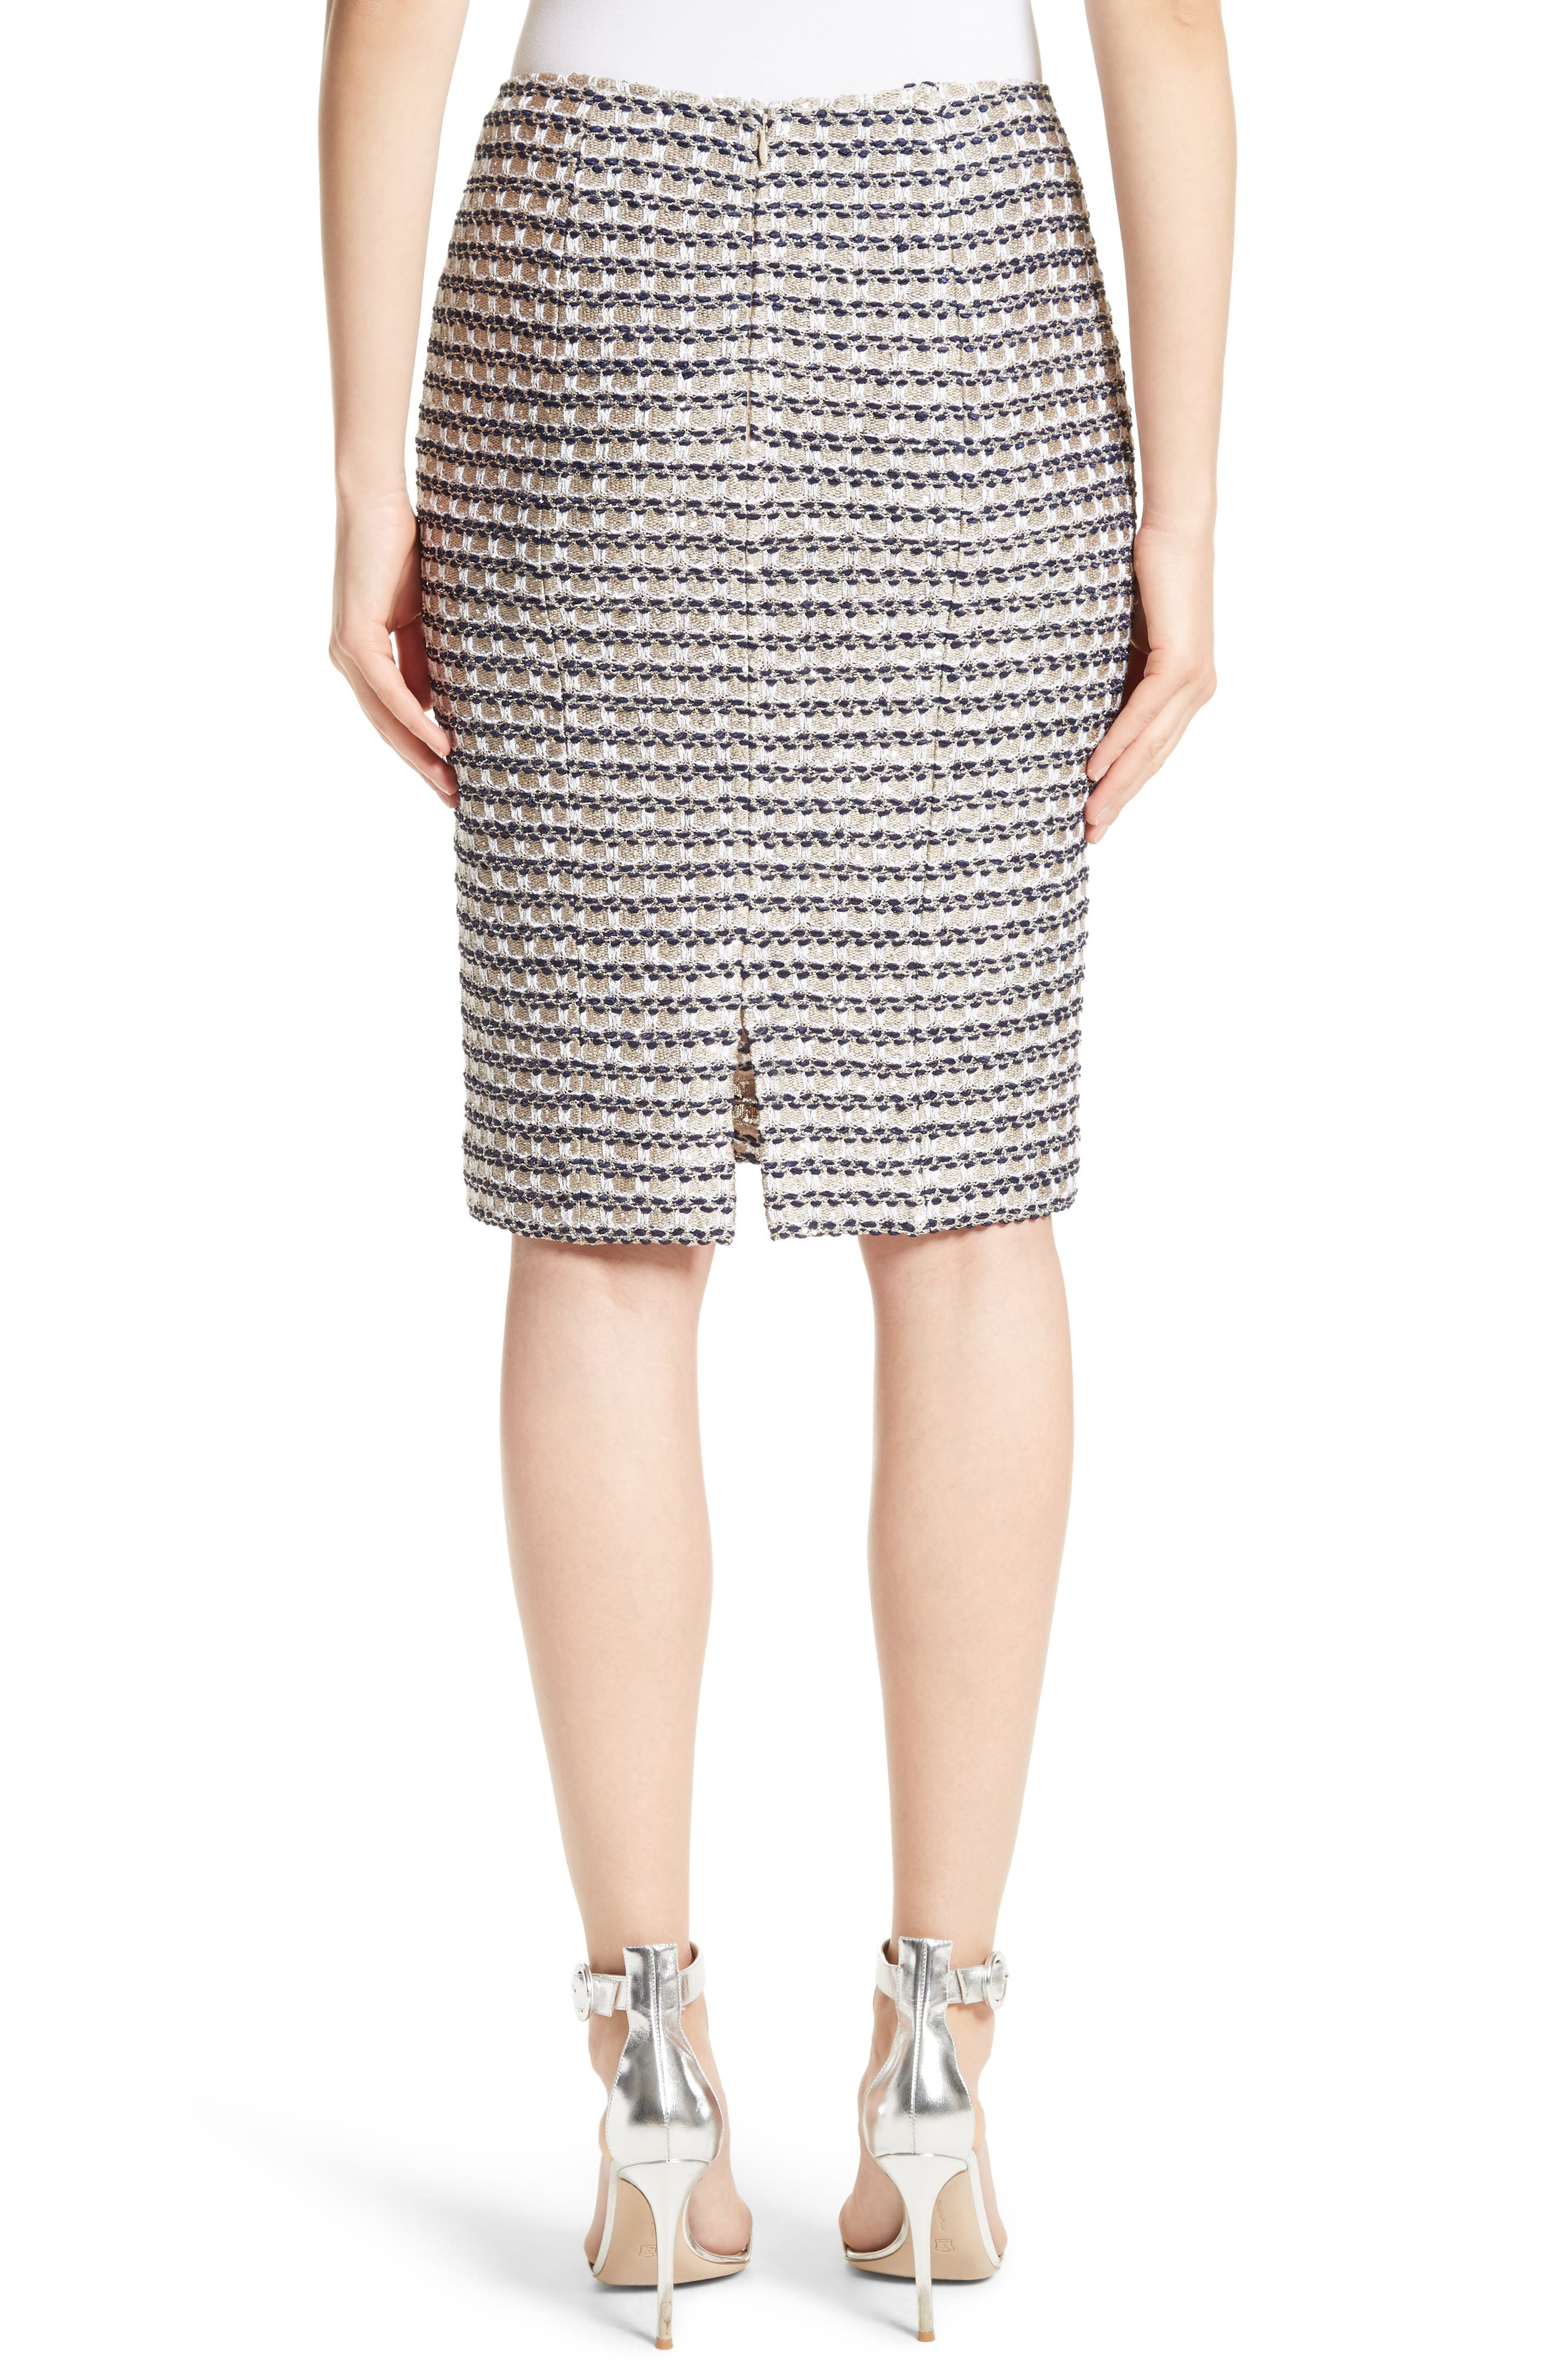 Vany Tweed Knit Pencil Skirt,                             Alternate thumbnail 2, color,                             040